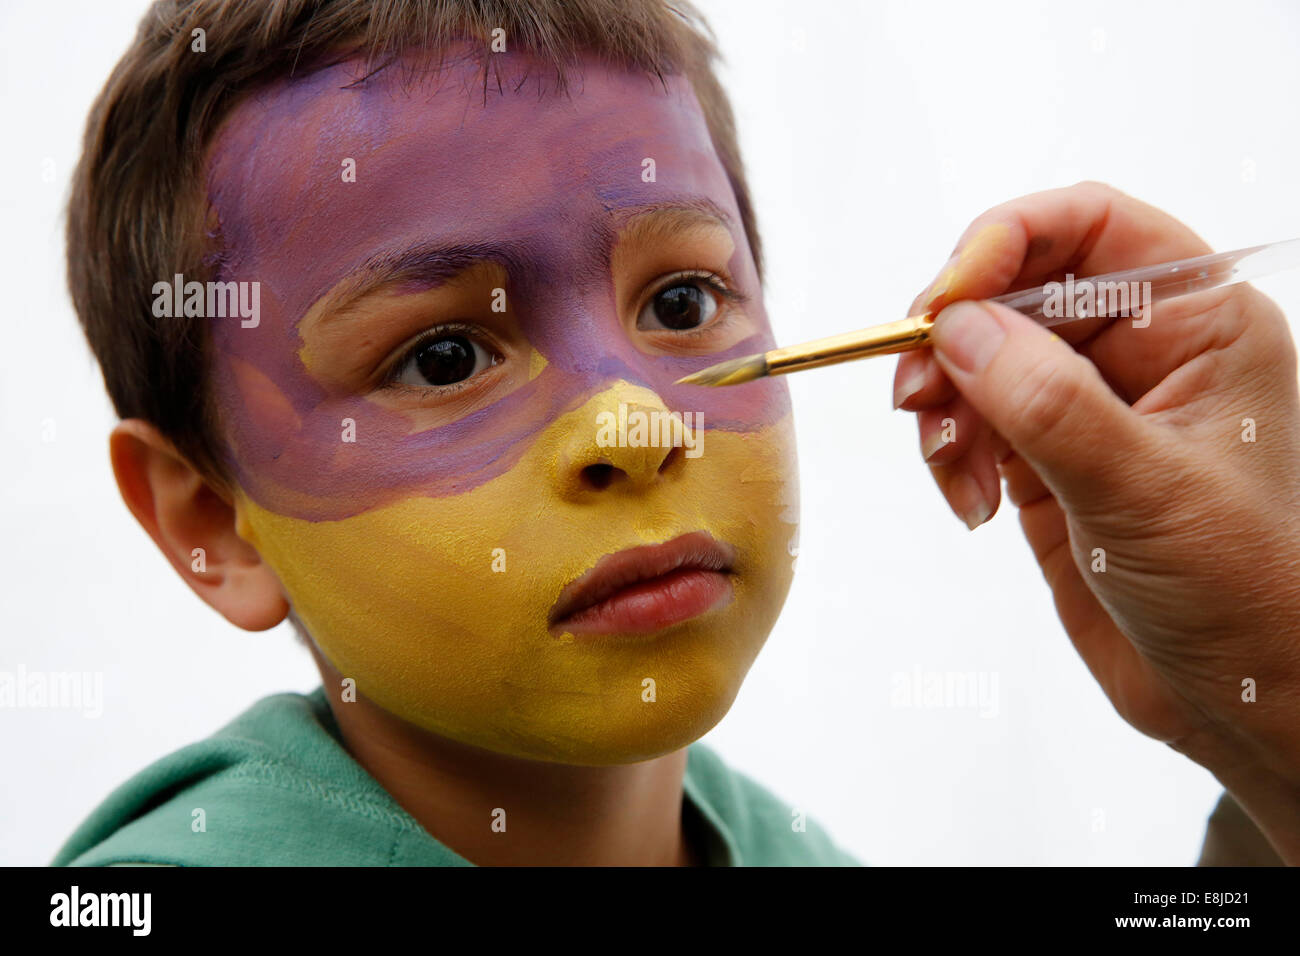 7-year-old boy having his face painted - Stock Image